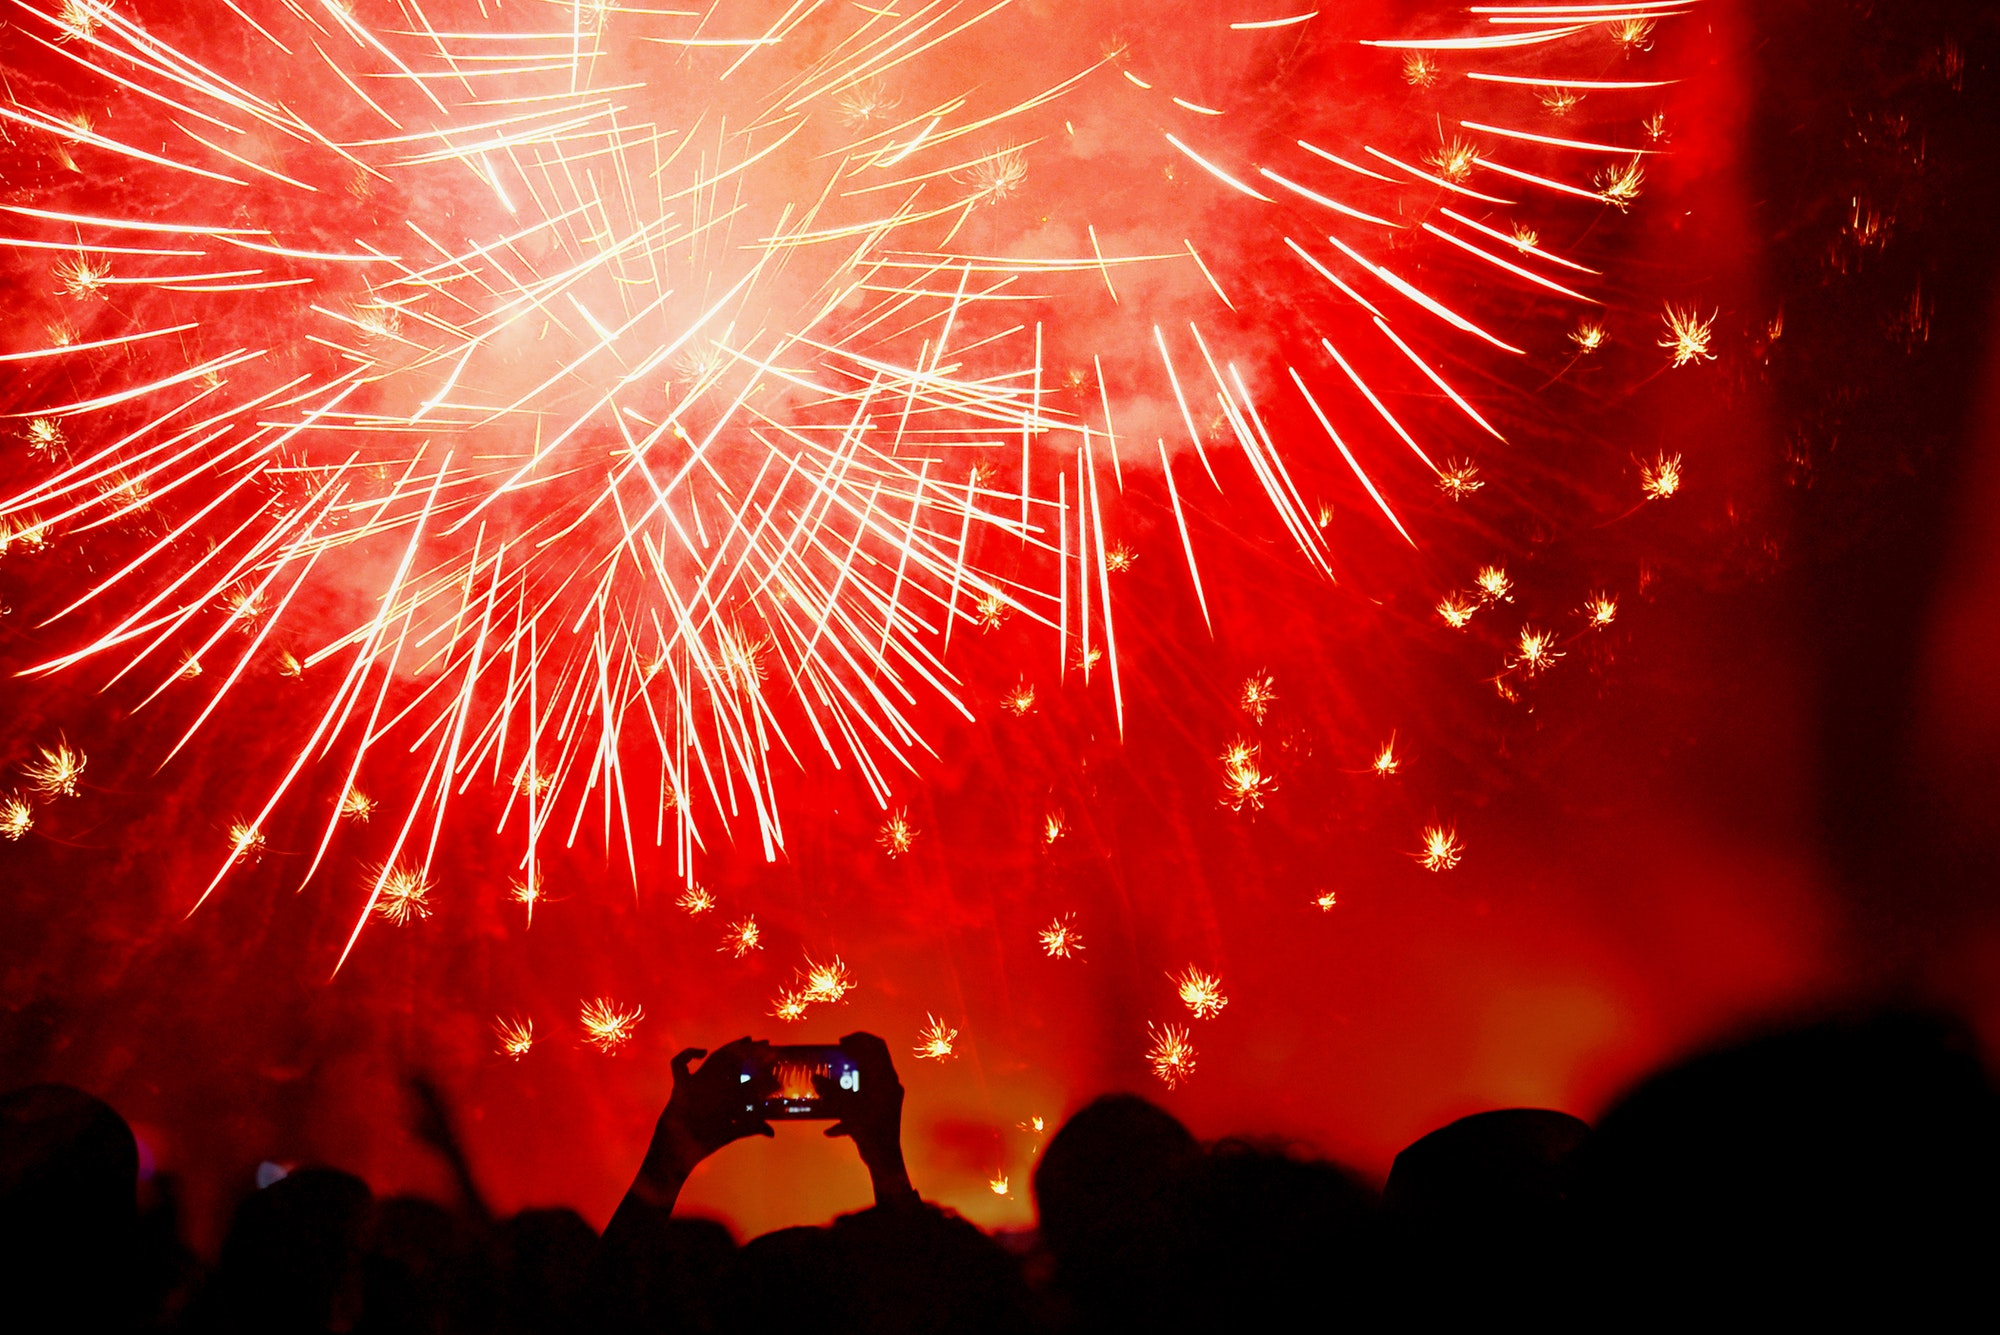 Crowd celebrating the New Year with fireworks, New Year concept